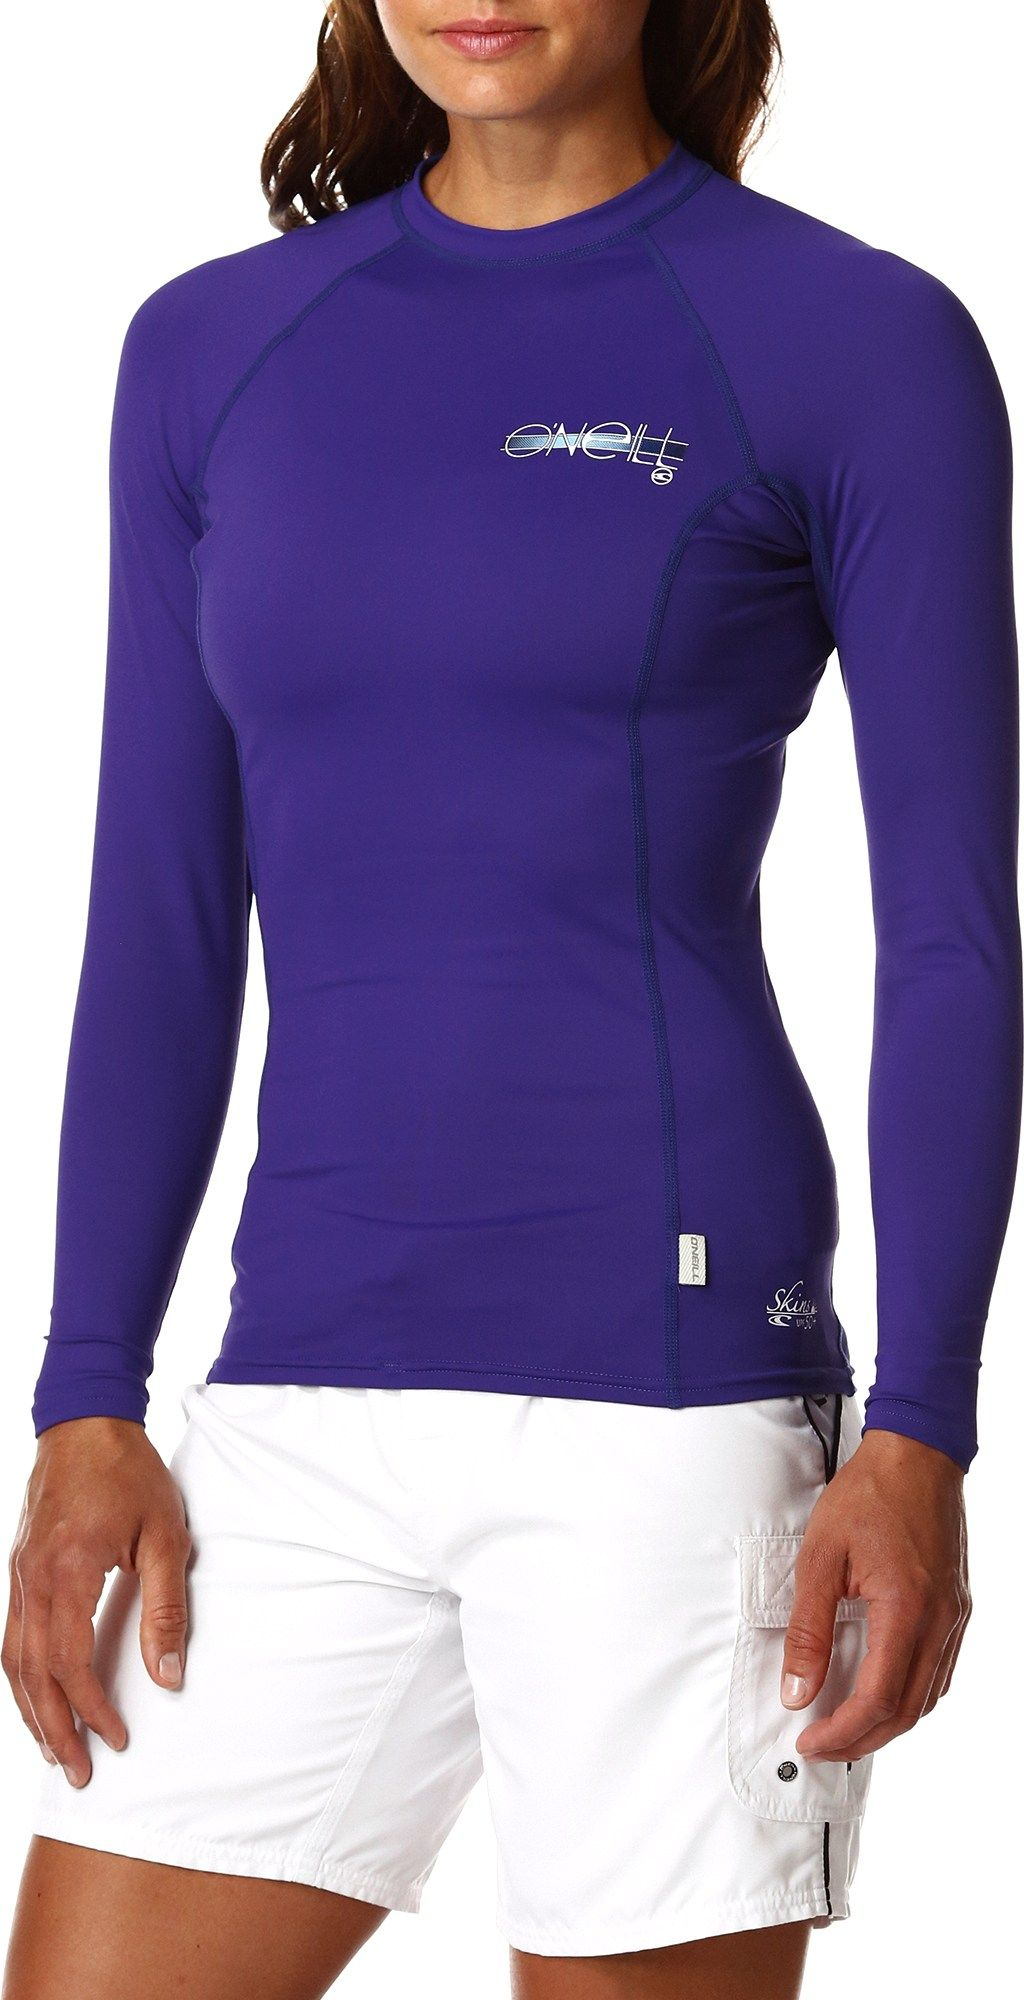 9ea87ed858 O'neill Female Skins Long-Sleeve Crew Rashguard - Women's | *Apparel ...